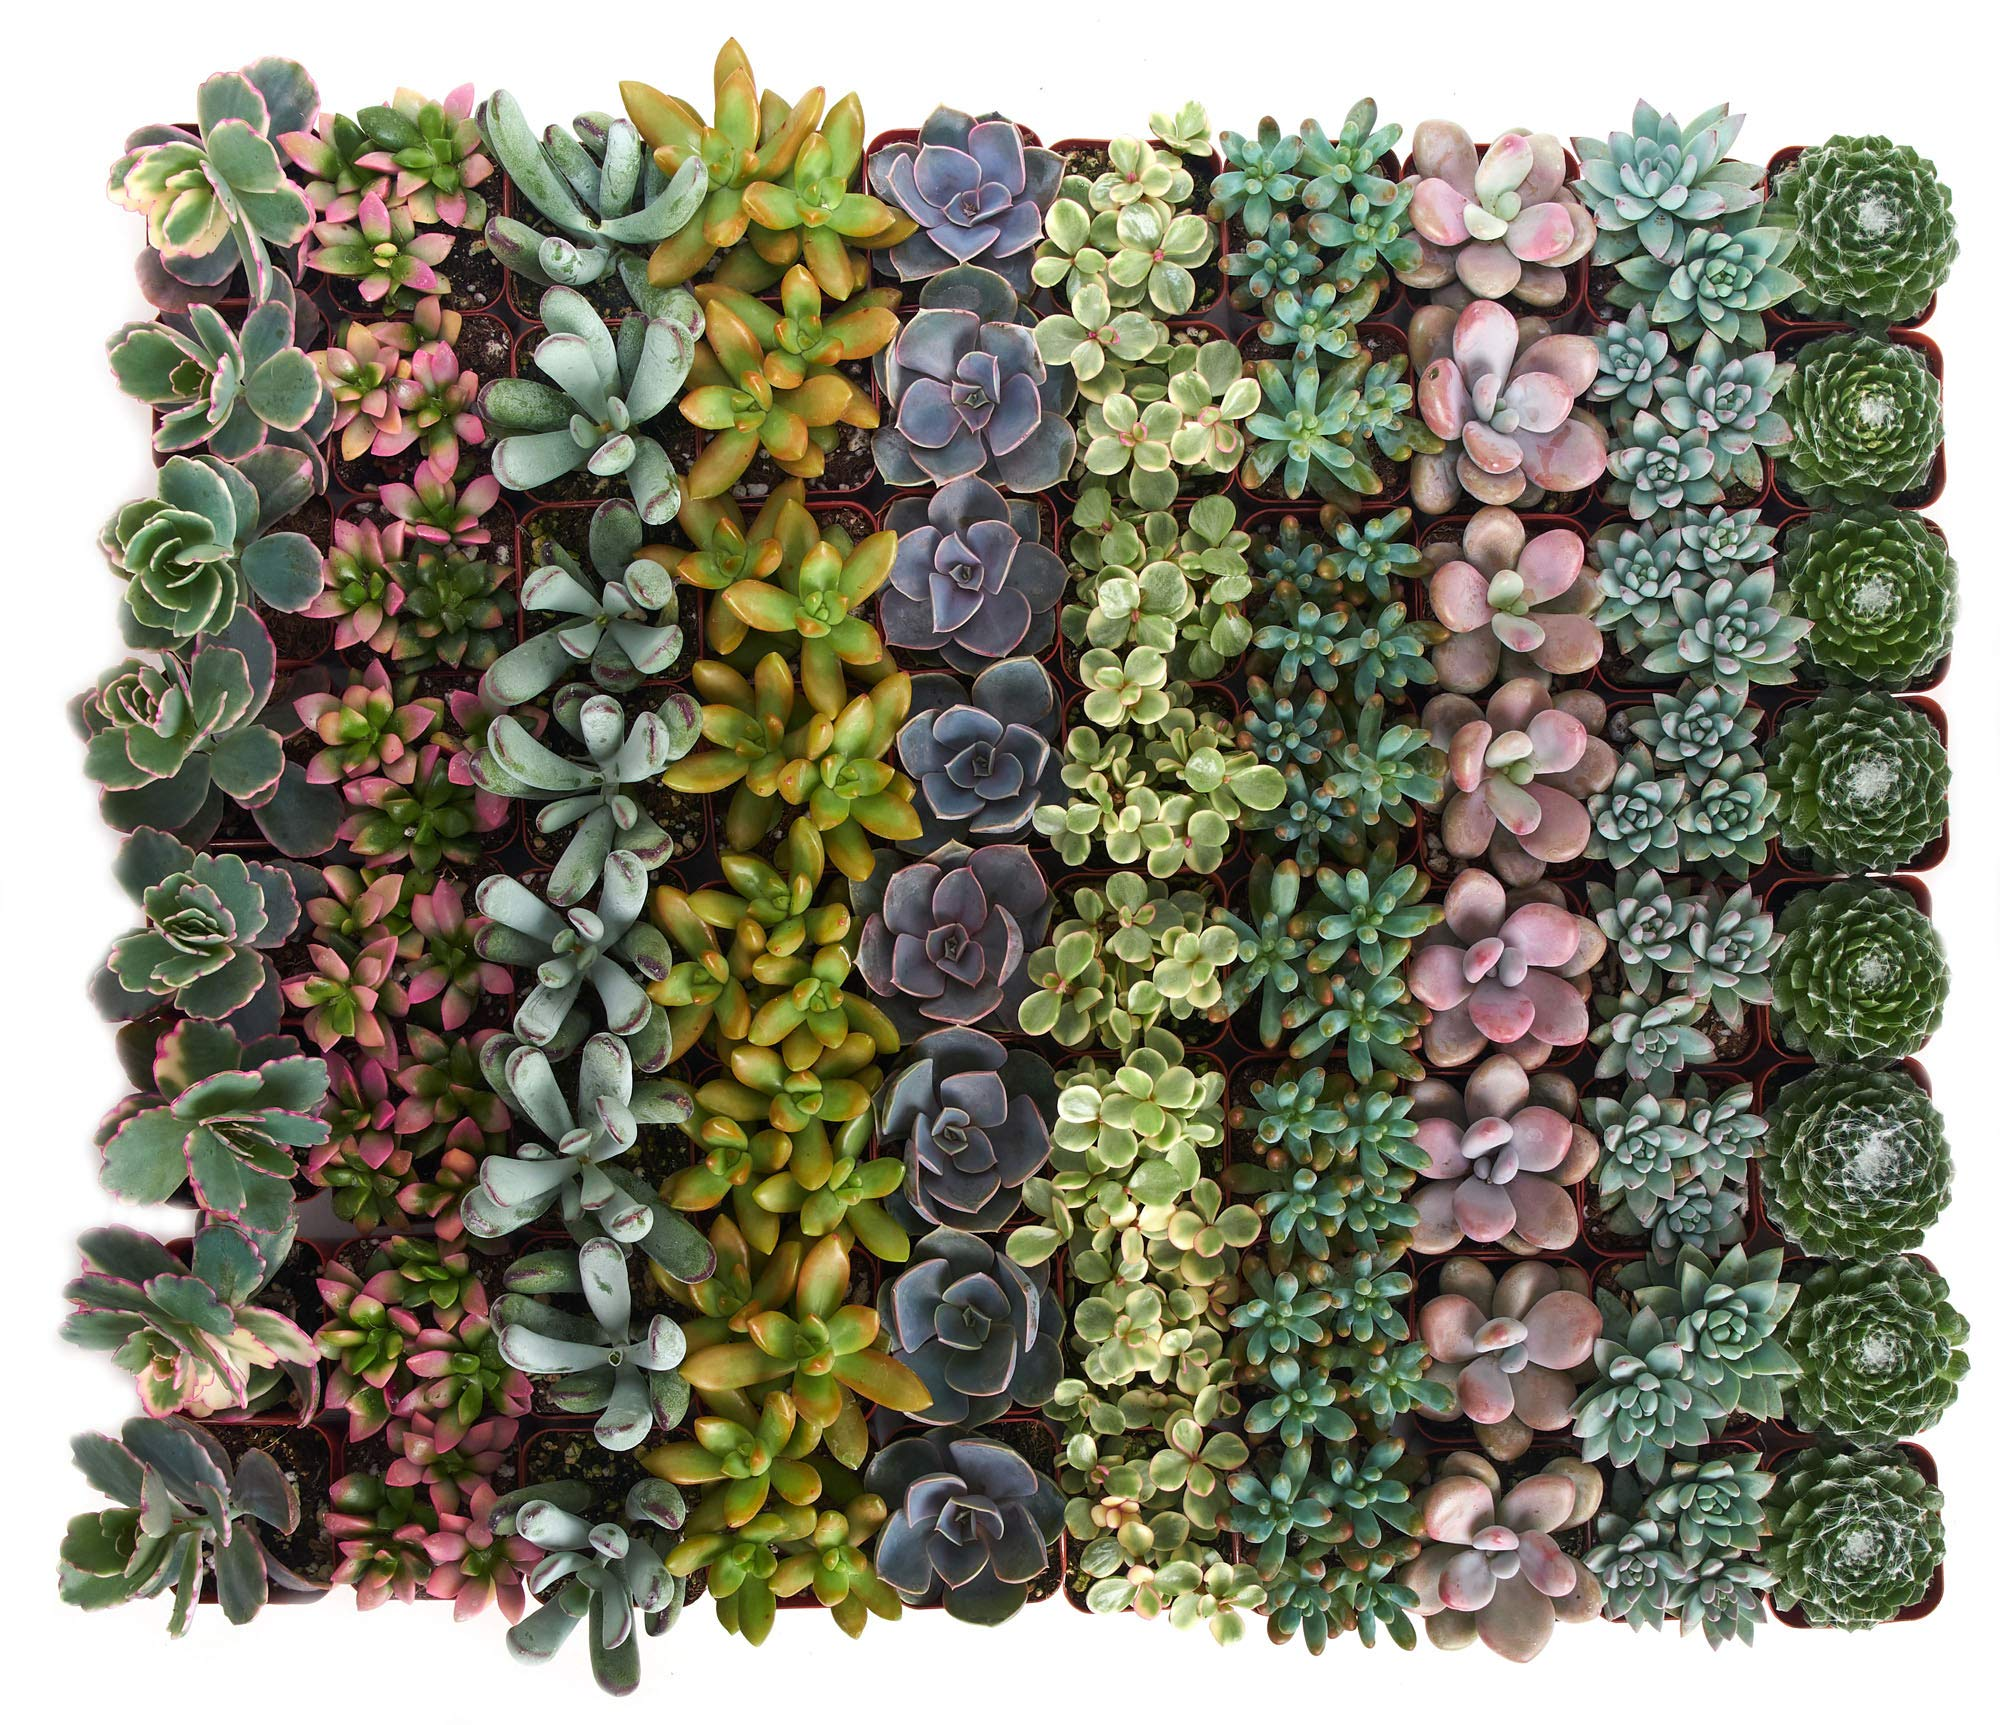 Shop Succulents | Premium Pastel Collection of Live Succulent Plants, Hand Selected Variety Pack of Mini Succulents | Collection of 32 by Shop Succulents